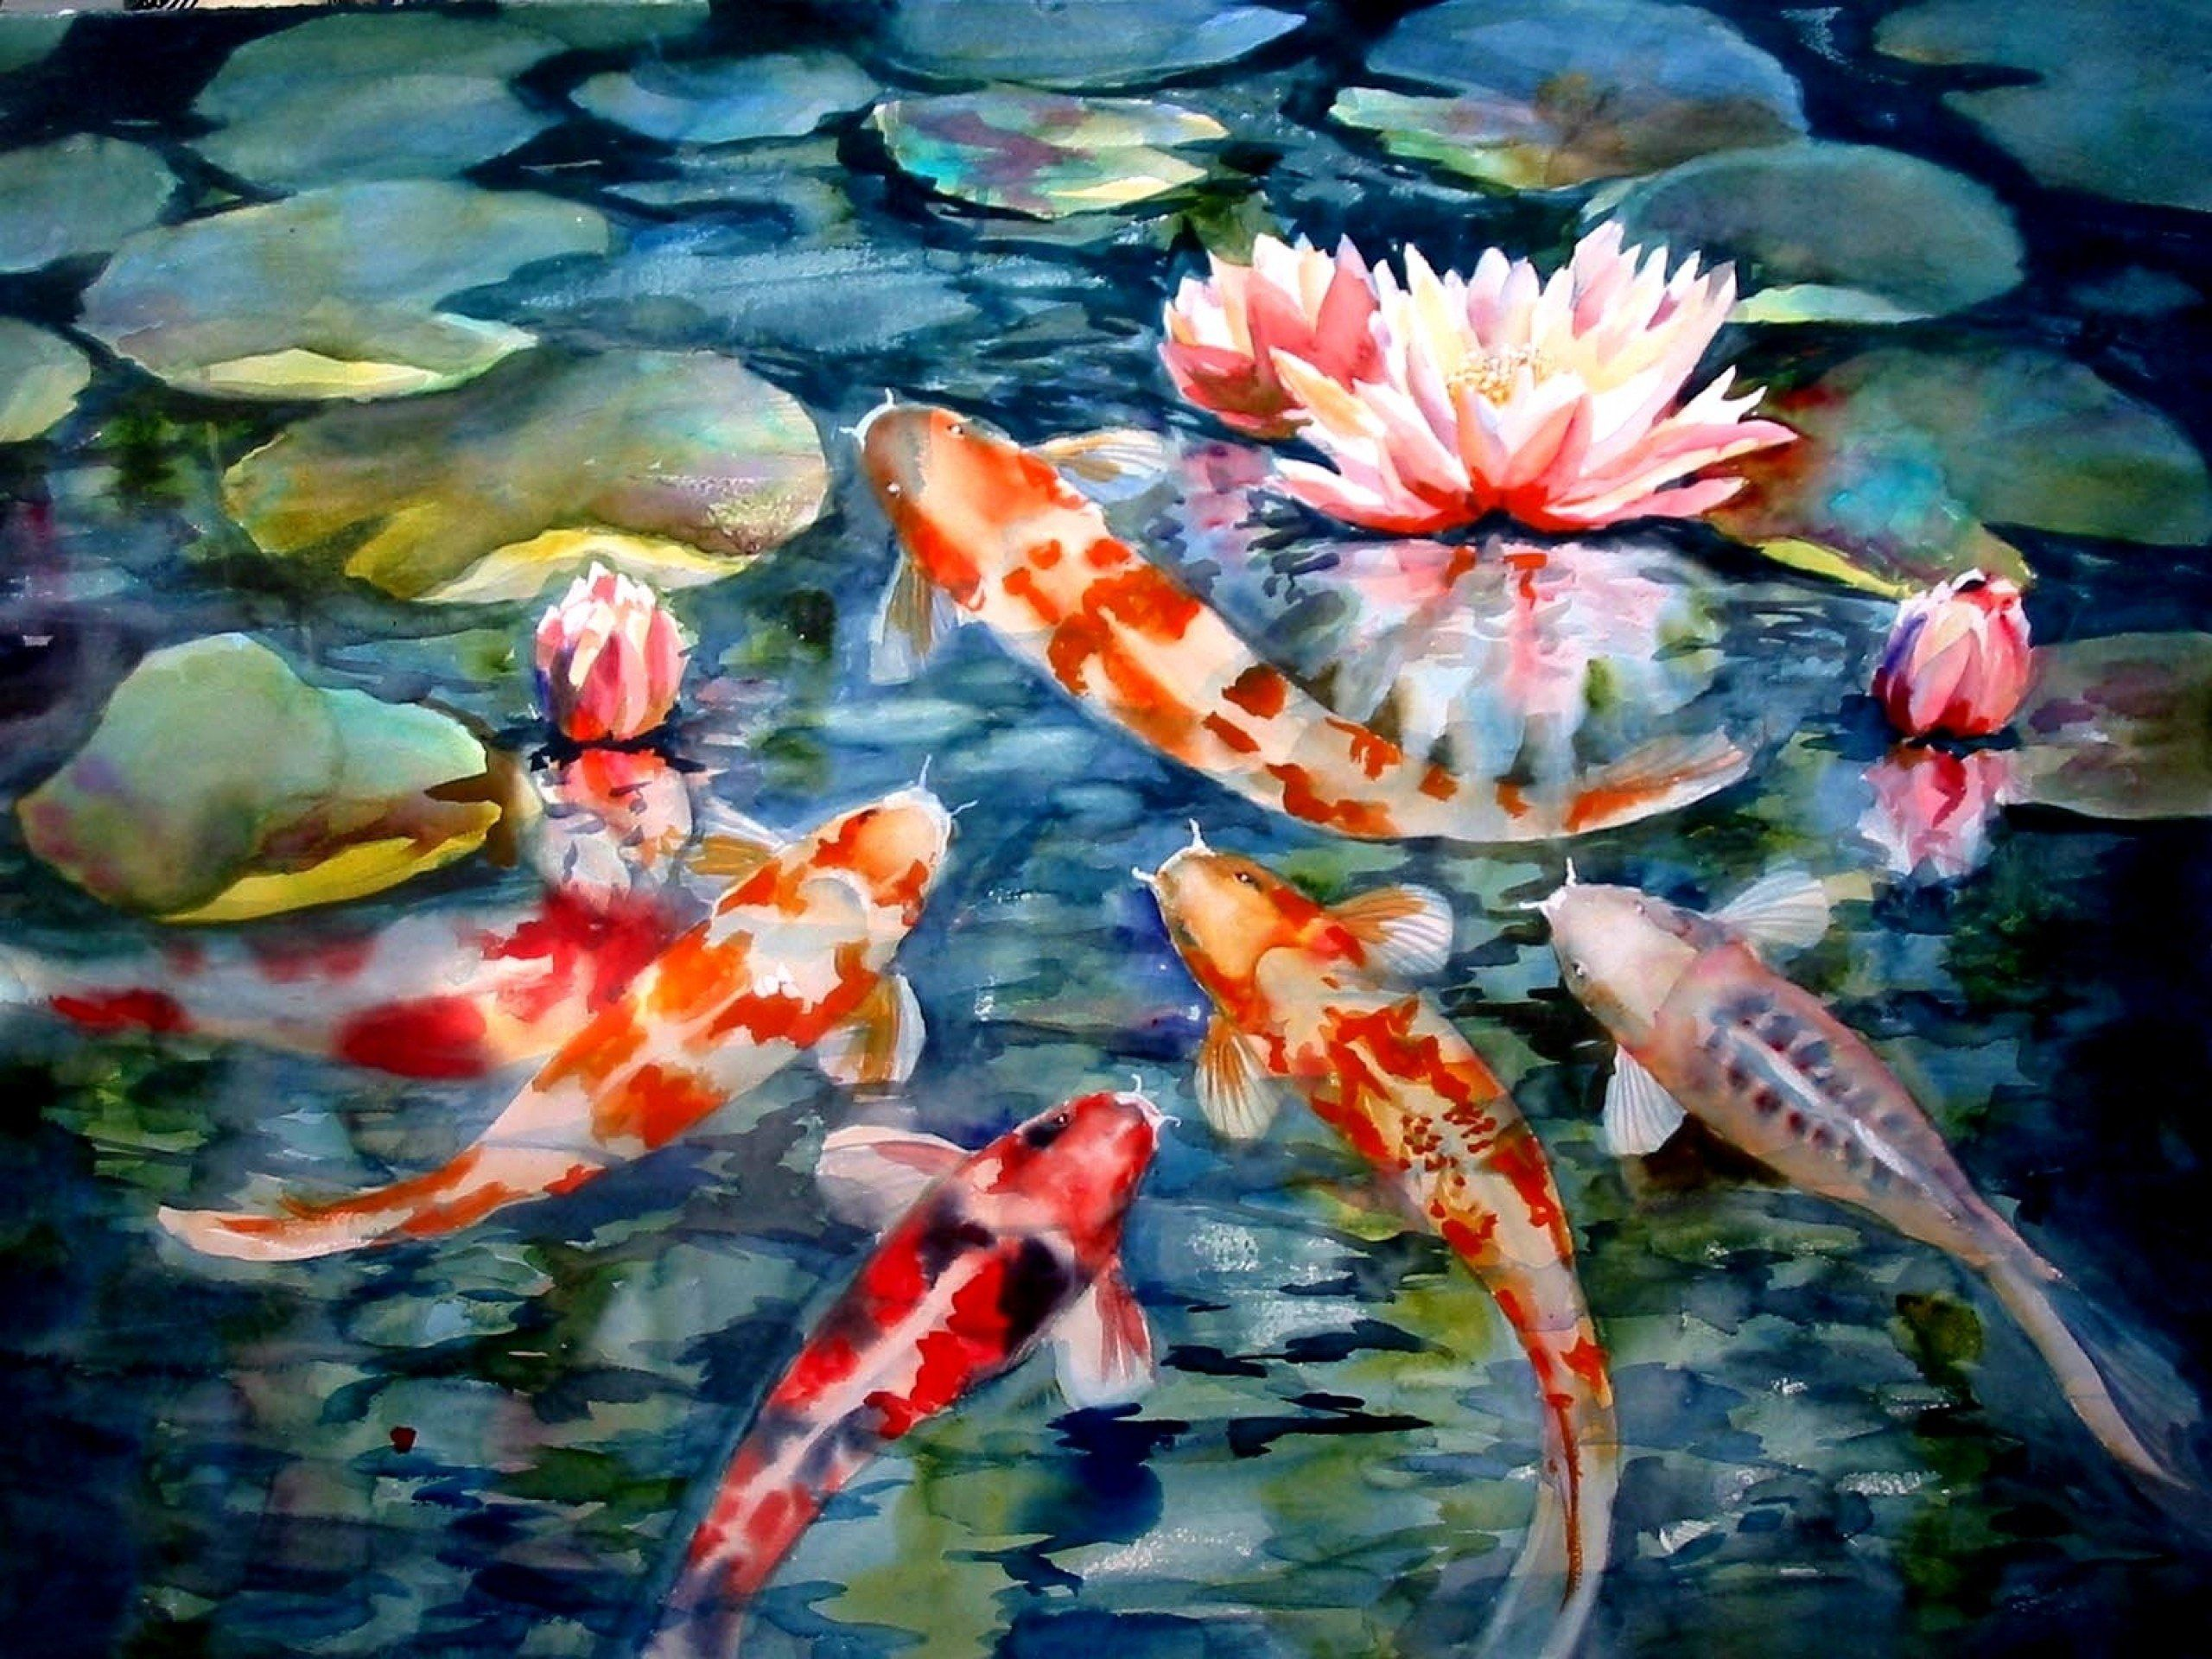 Simple Wallpaper Art Koi Fish  Ec8Eeac5F900208E894B11E5B482Fdf3 Trends 137255